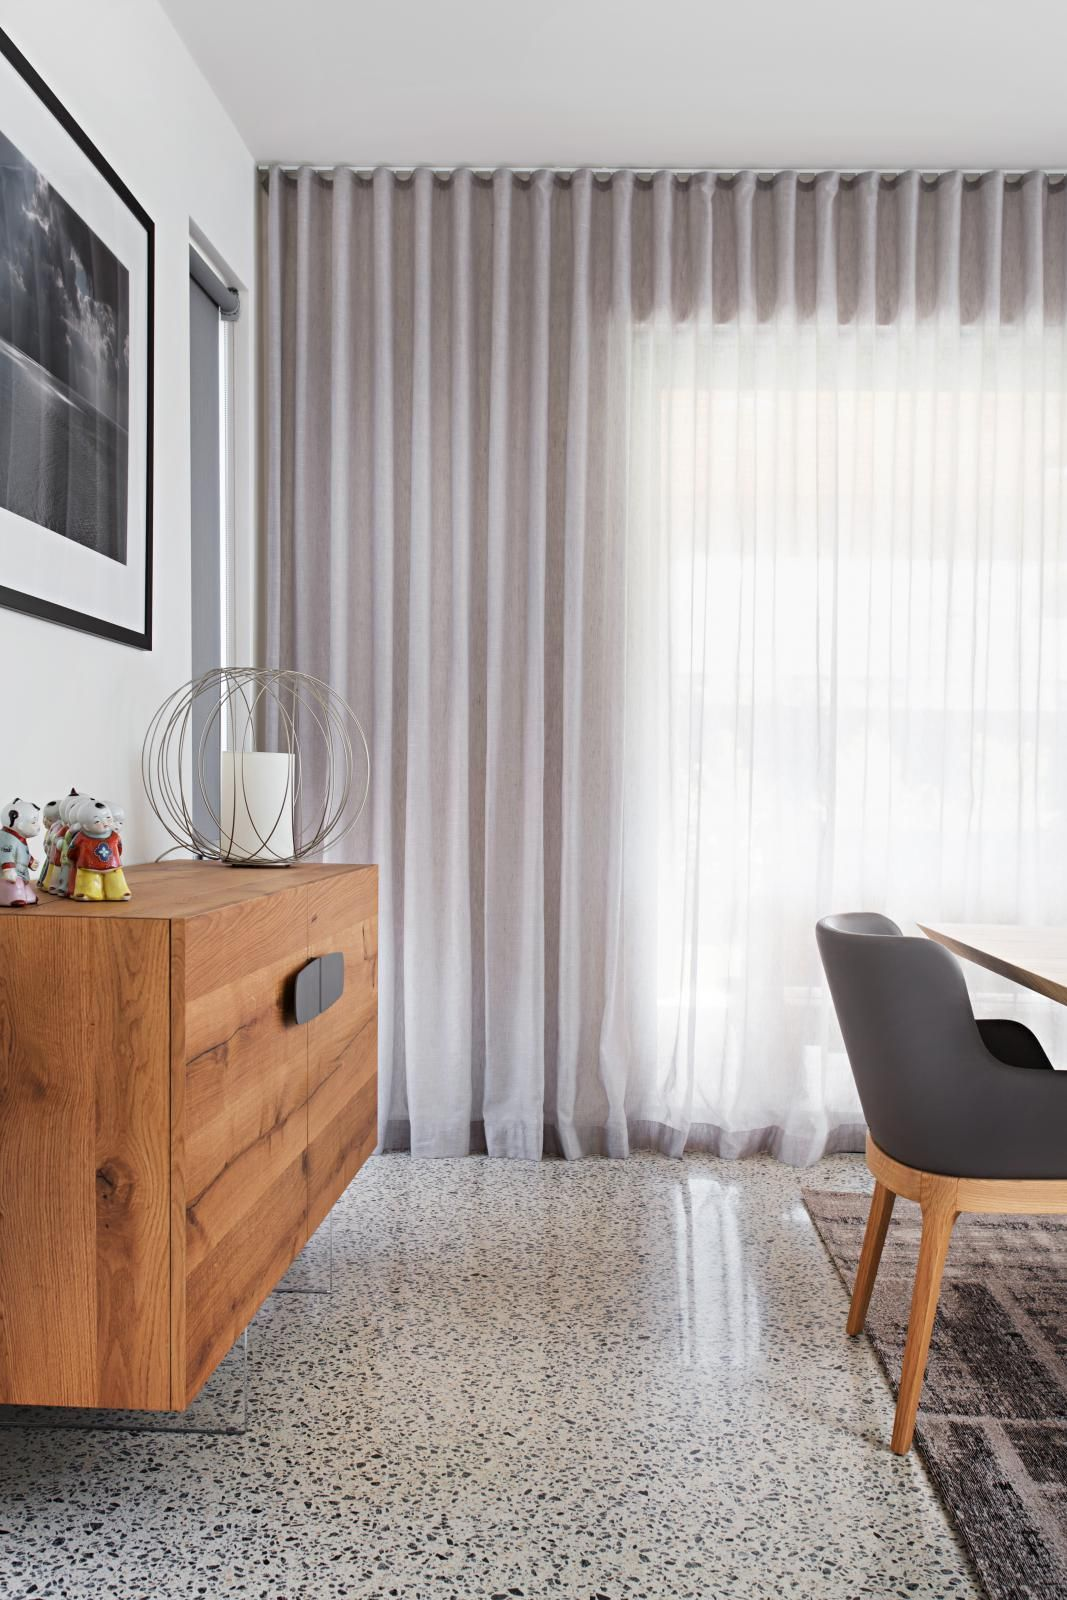 how to hang curtains from ceiling with command hooks